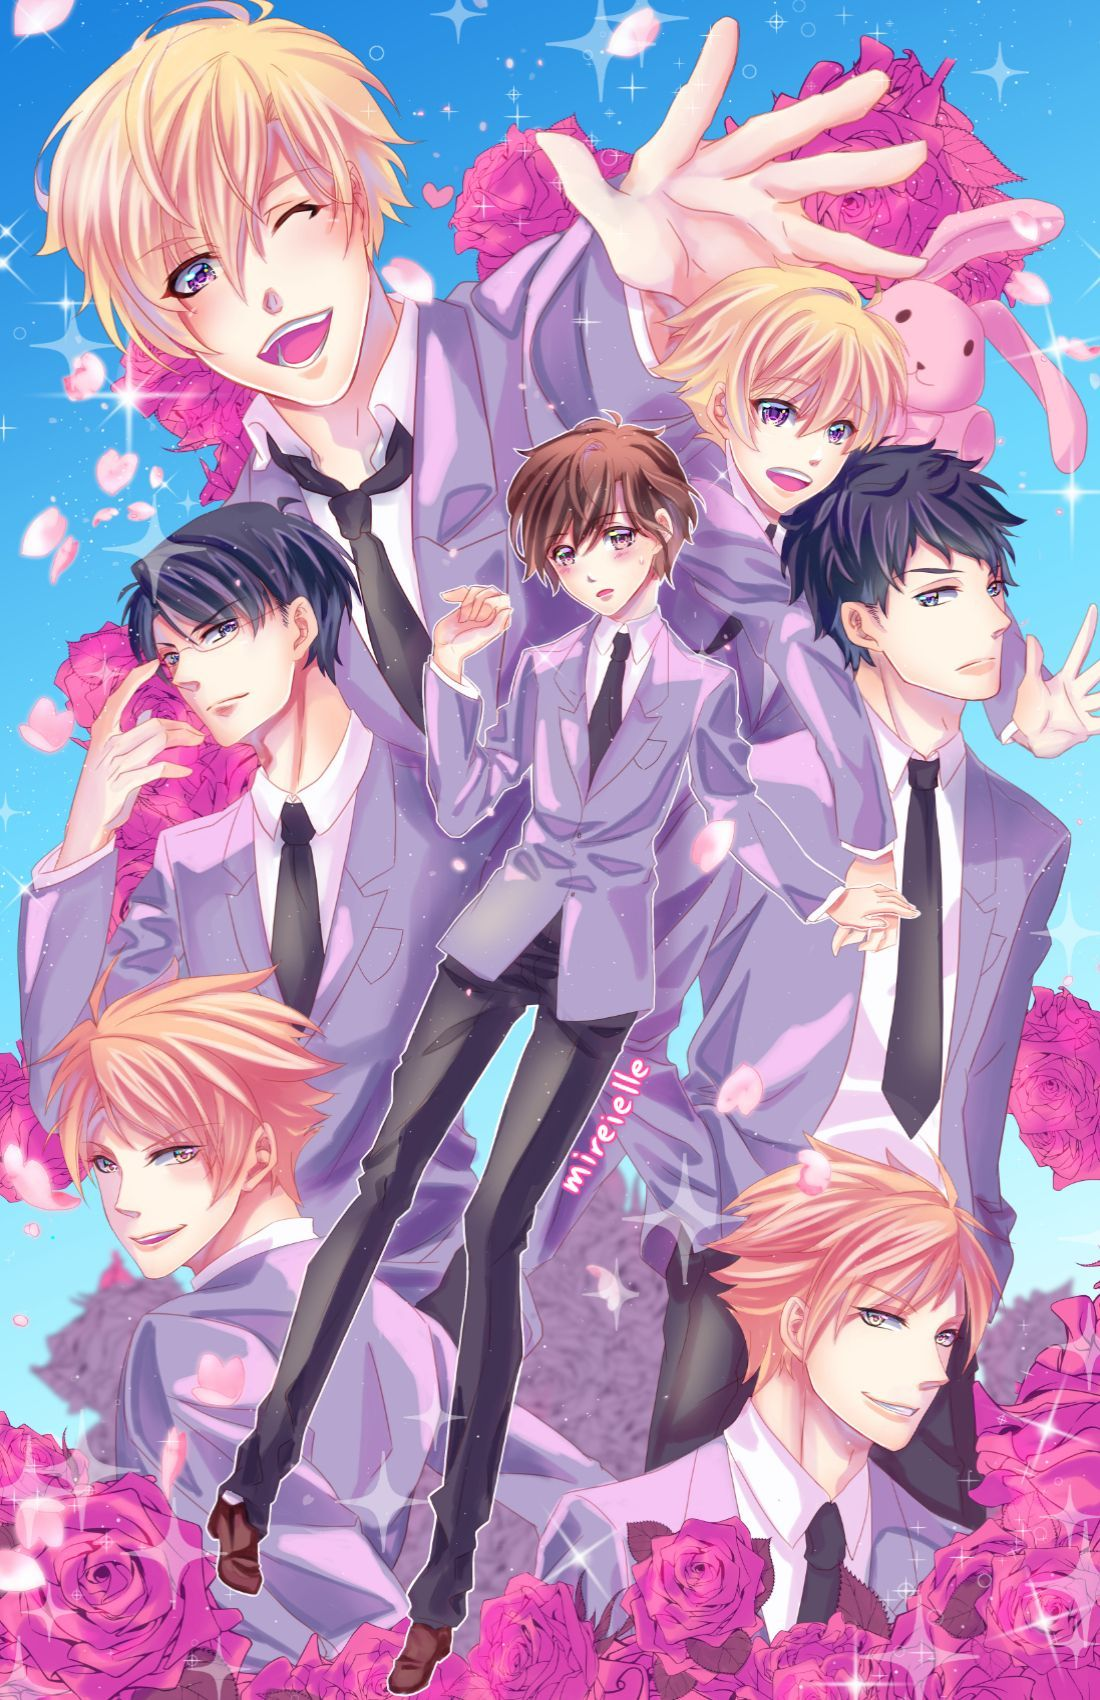 Pin by Cortesadilene on Ouran high school in 2020 Ouran